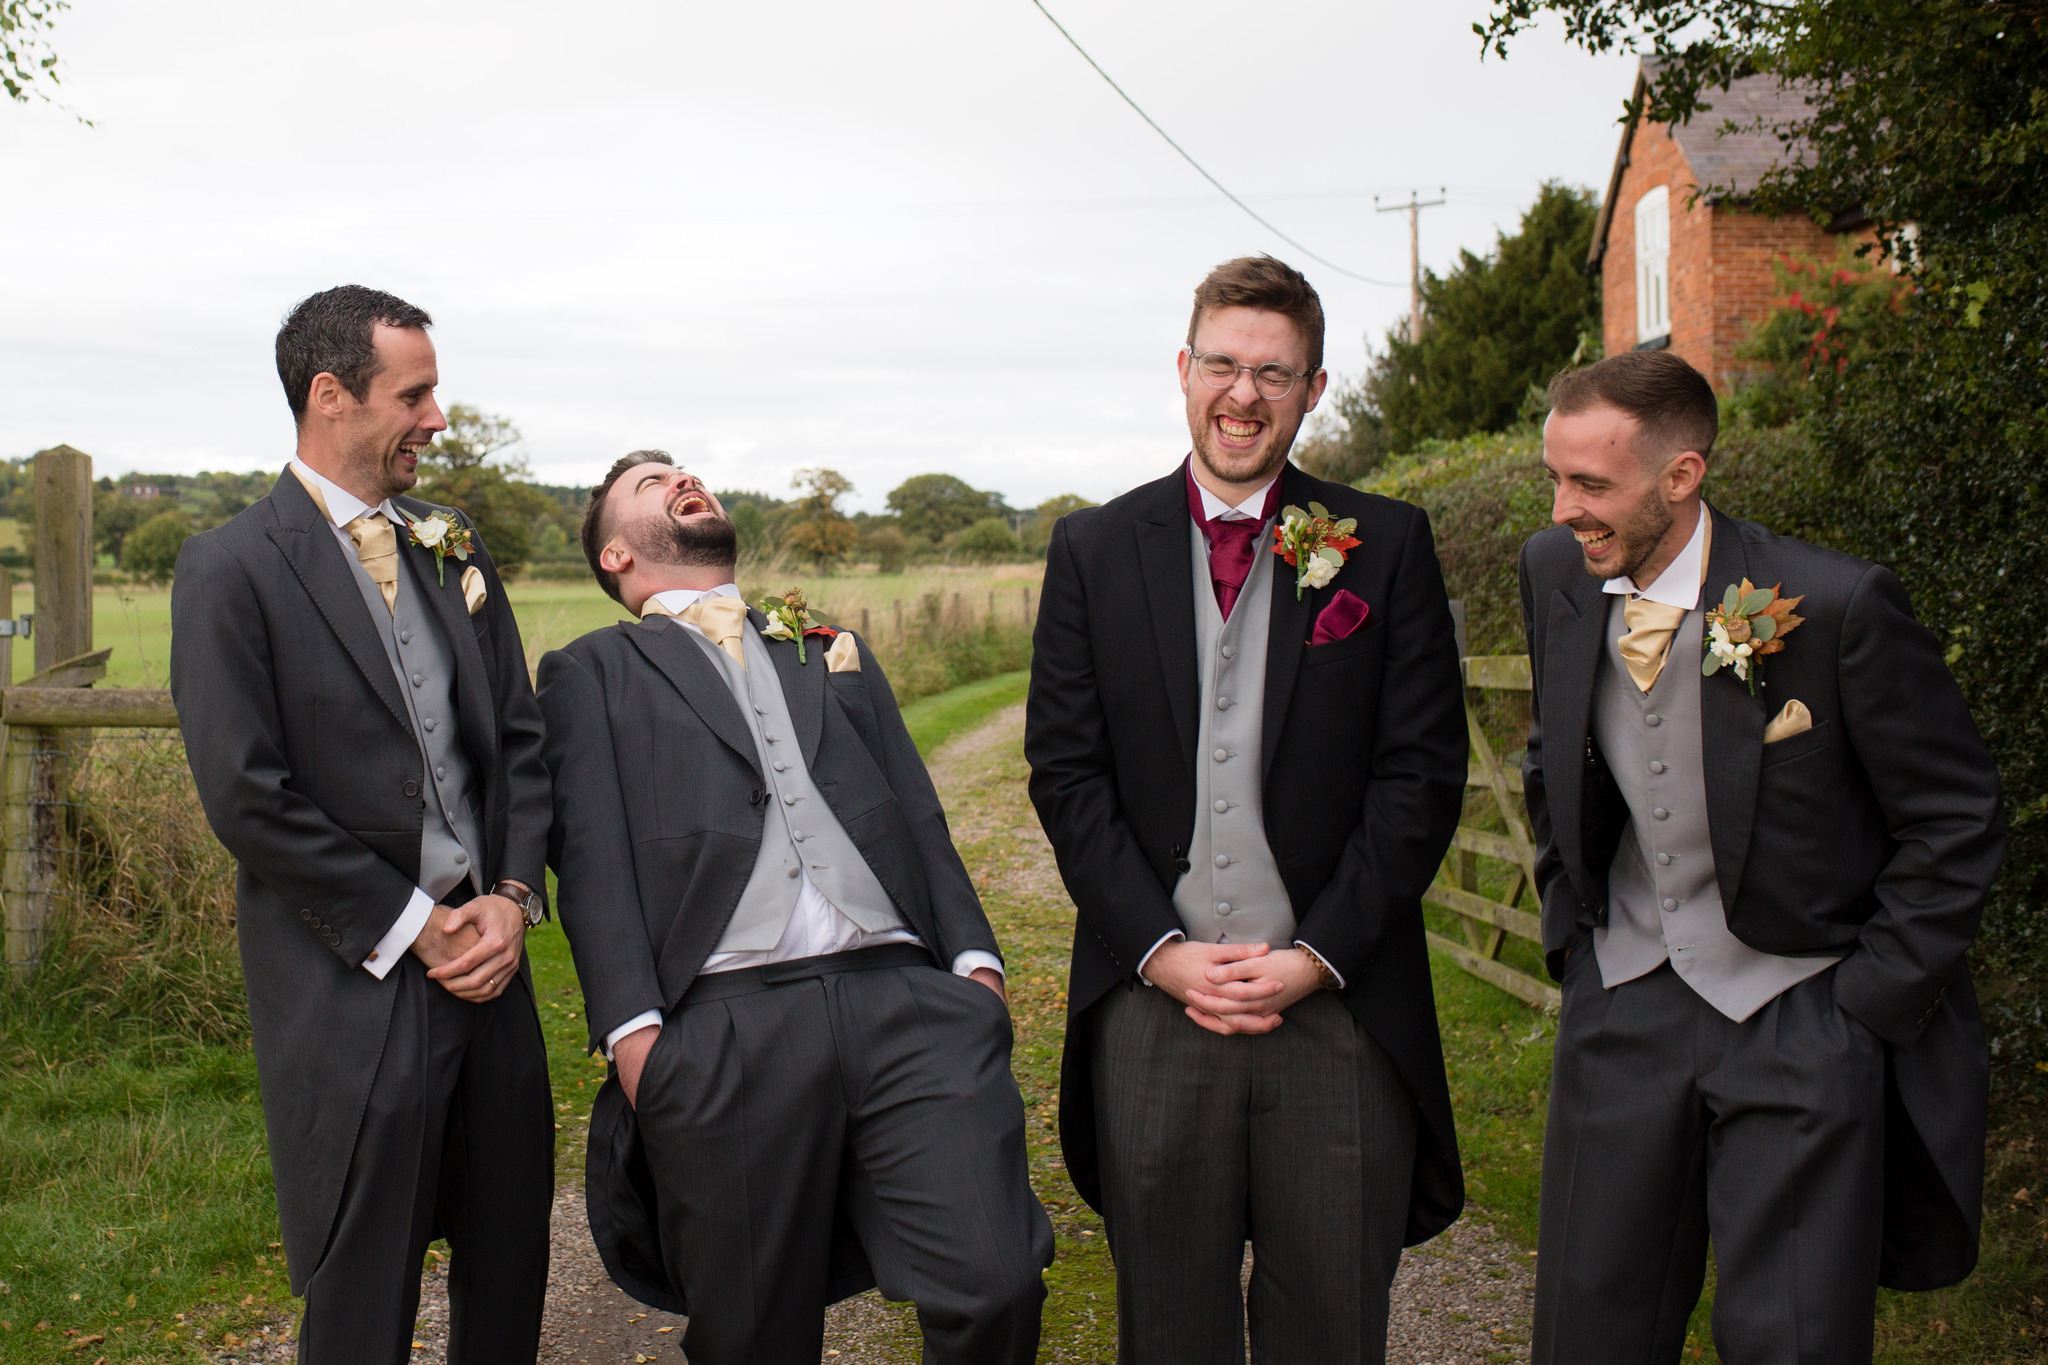 Wedding photographer Shropshire fun group photos at weddings of groomsmen in a field